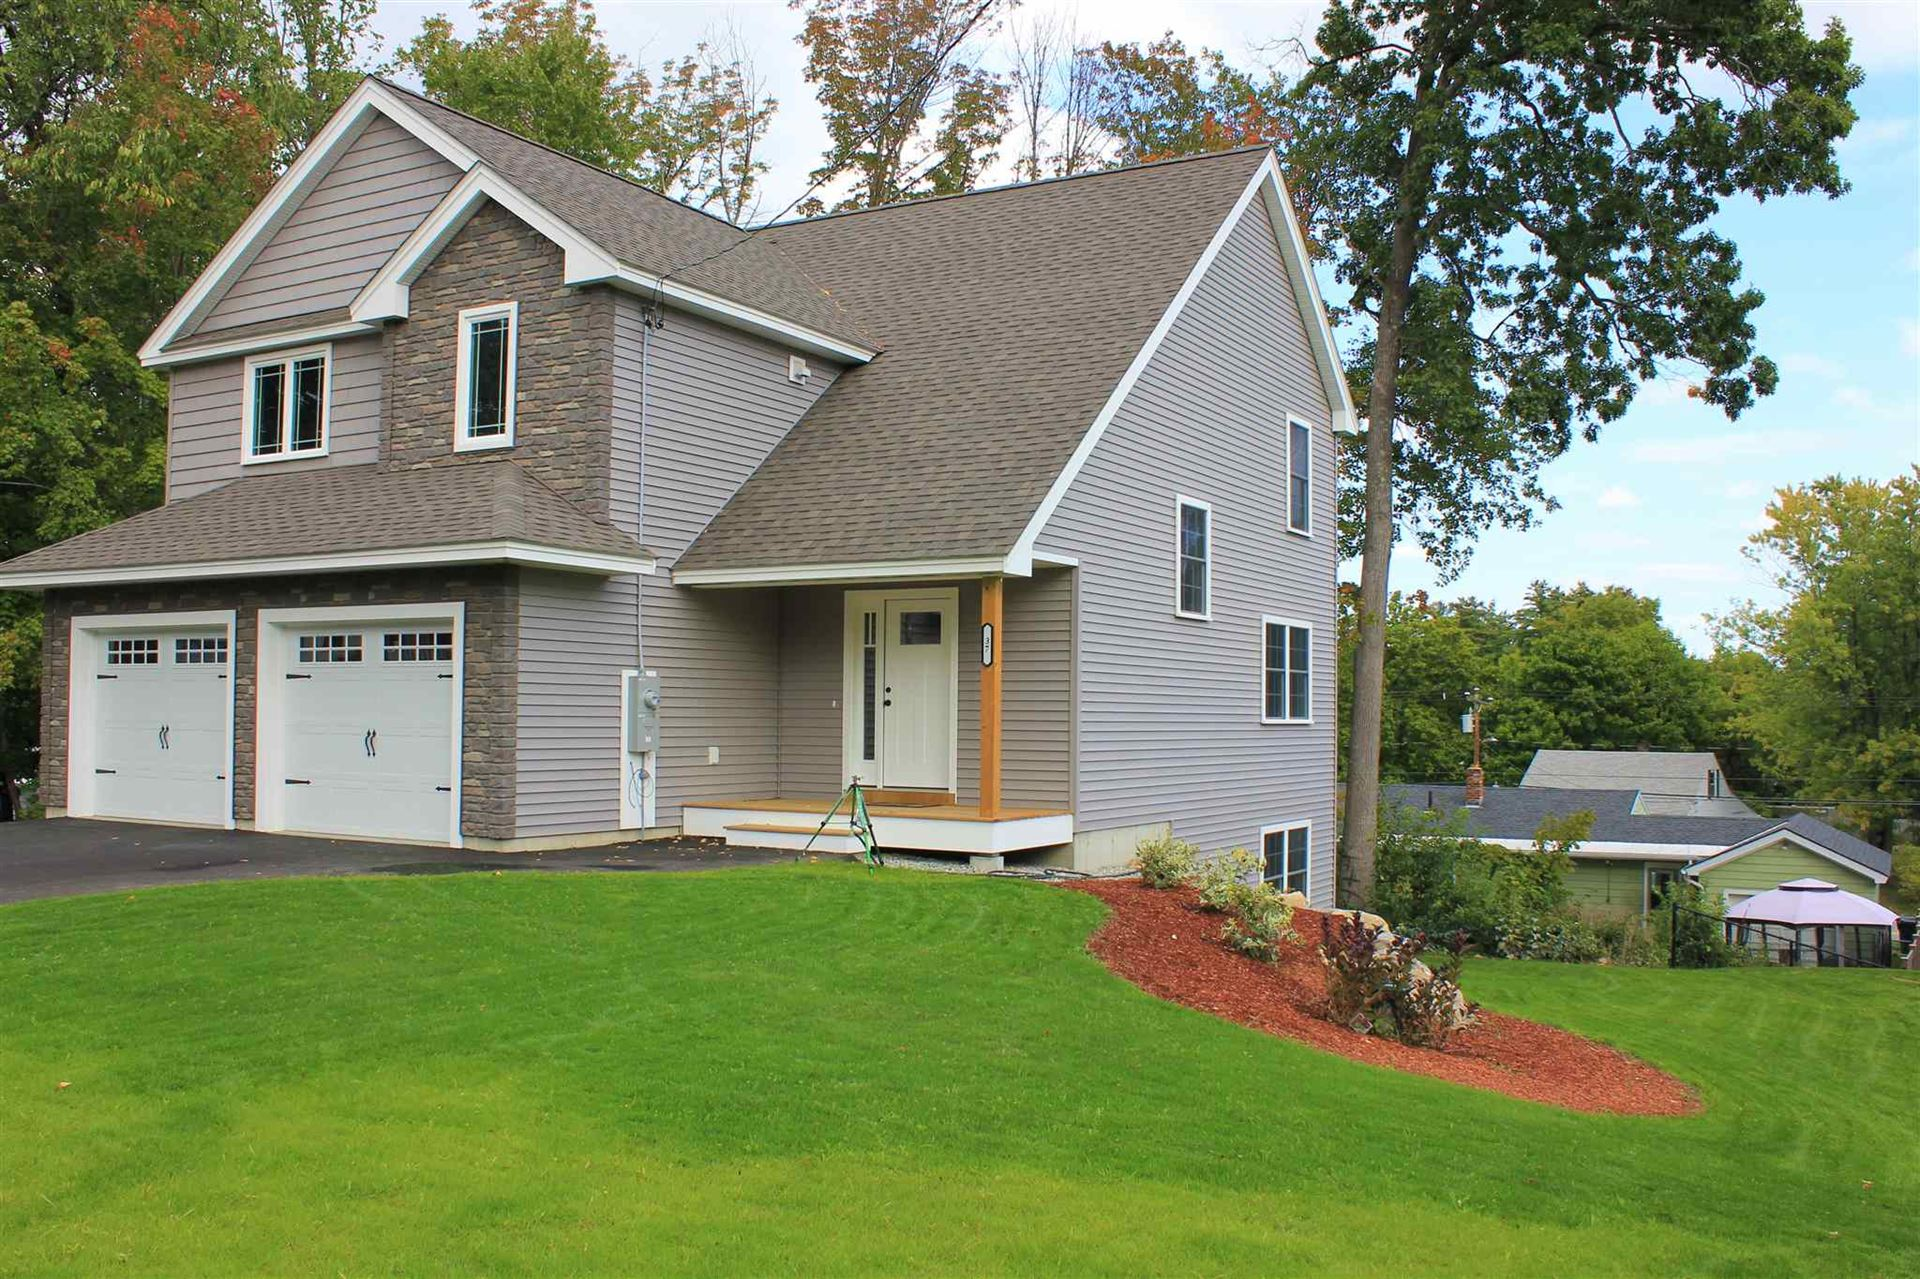 37 Orms Street #665-12, Manchester, NH 03102 - #: 4807081